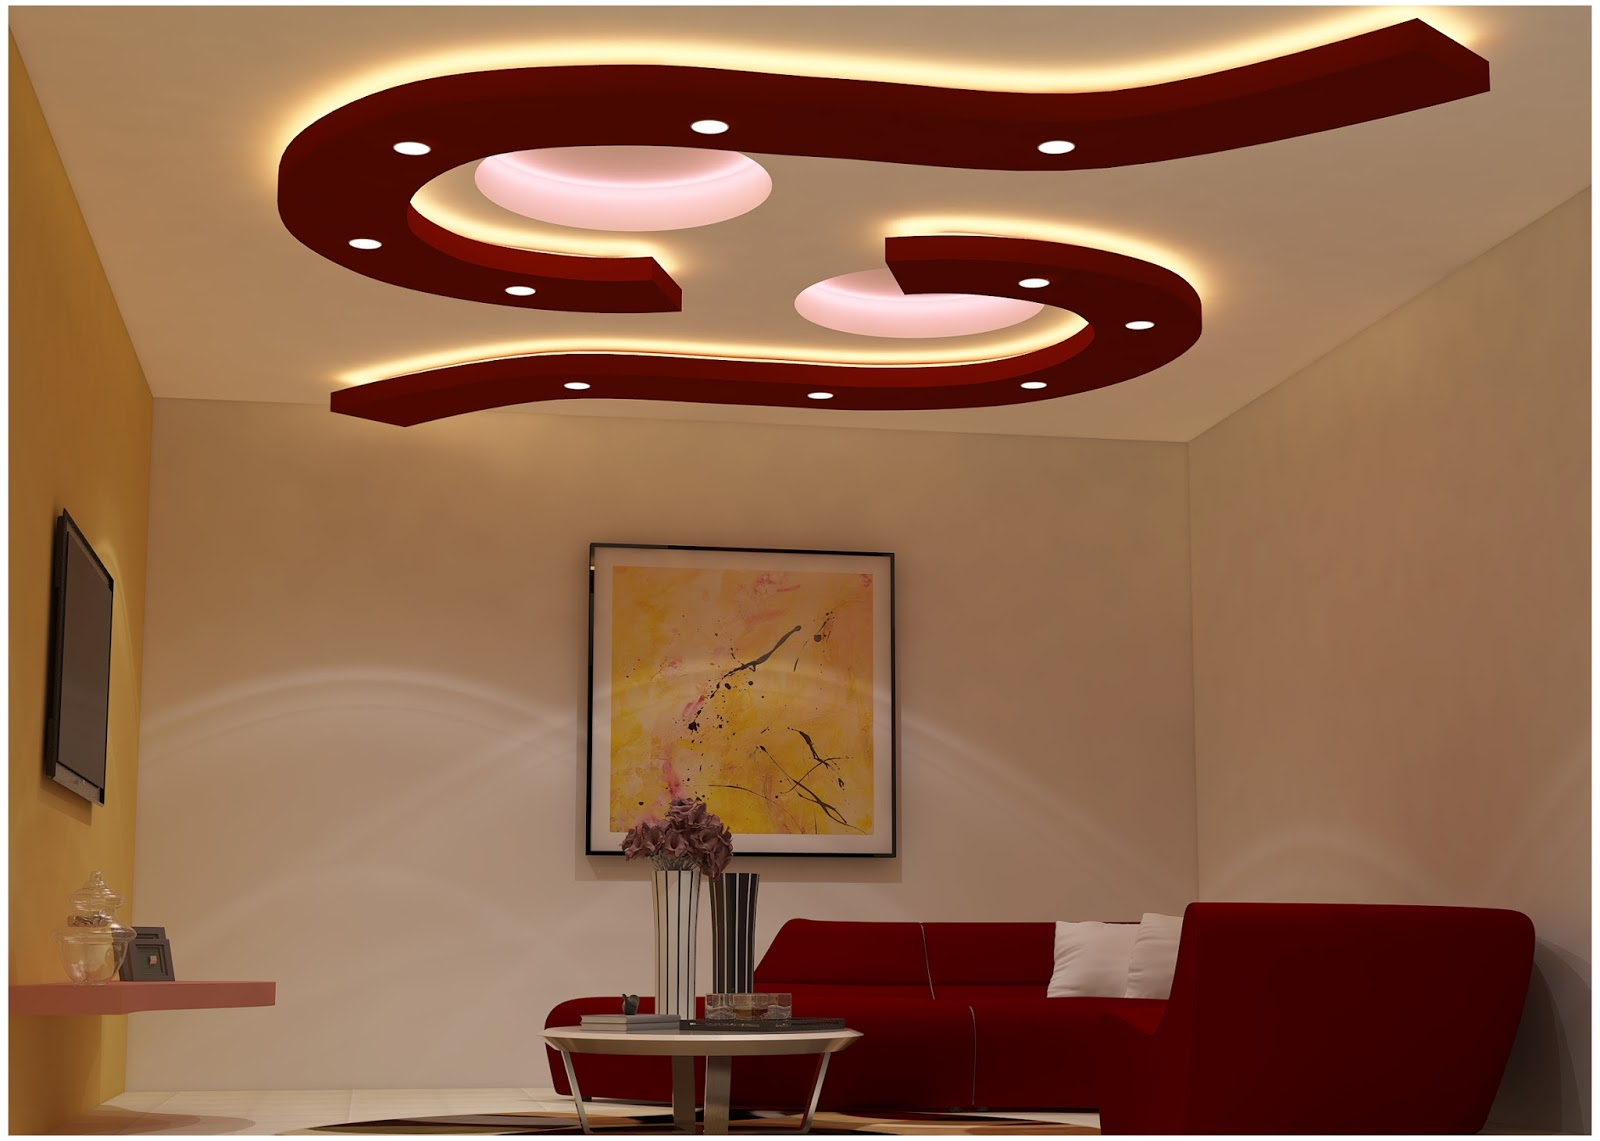 35 latest plaster of paris designs pop false ceiling for Modern ceiling design 2017